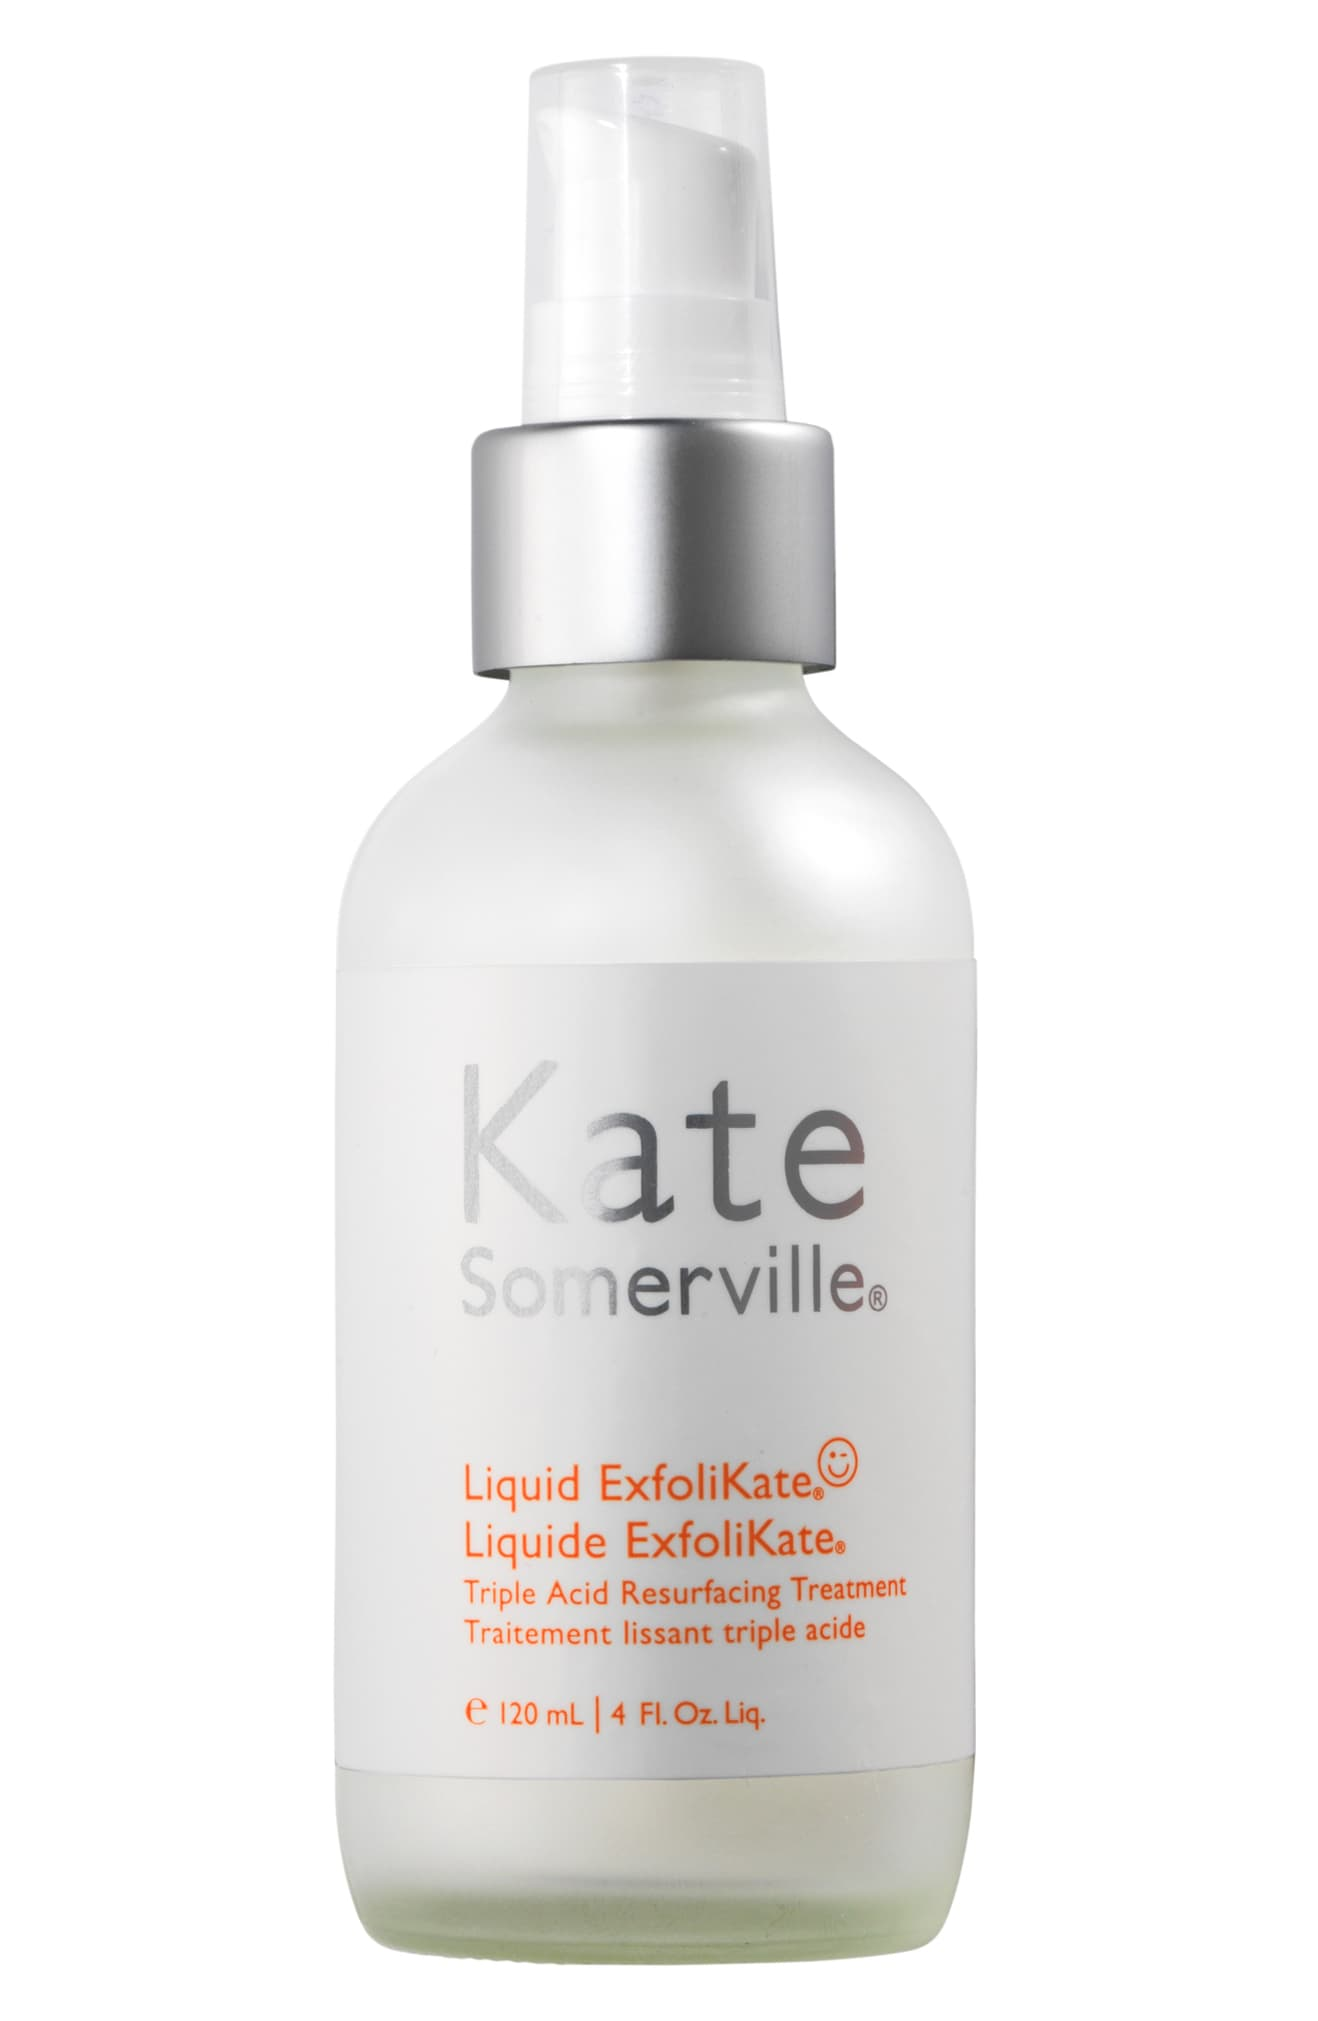 KATE SOMERVILLE® Liquid Exfolikate® Triple Acid Resurfacing Treatment